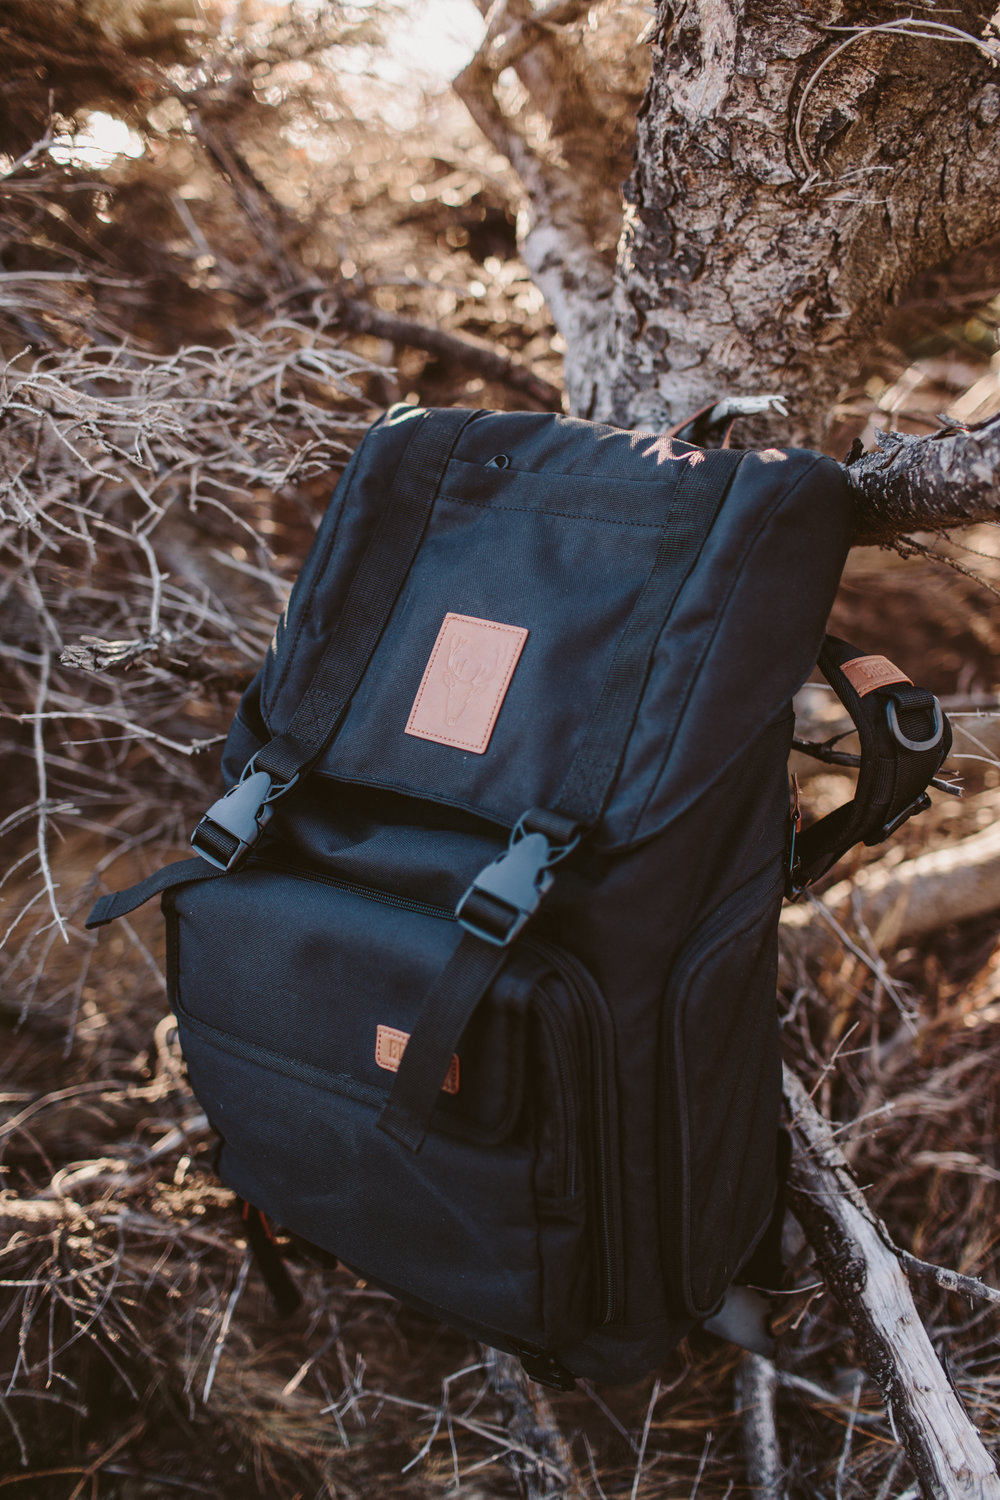 Rugged Camera Bag Review Roundup